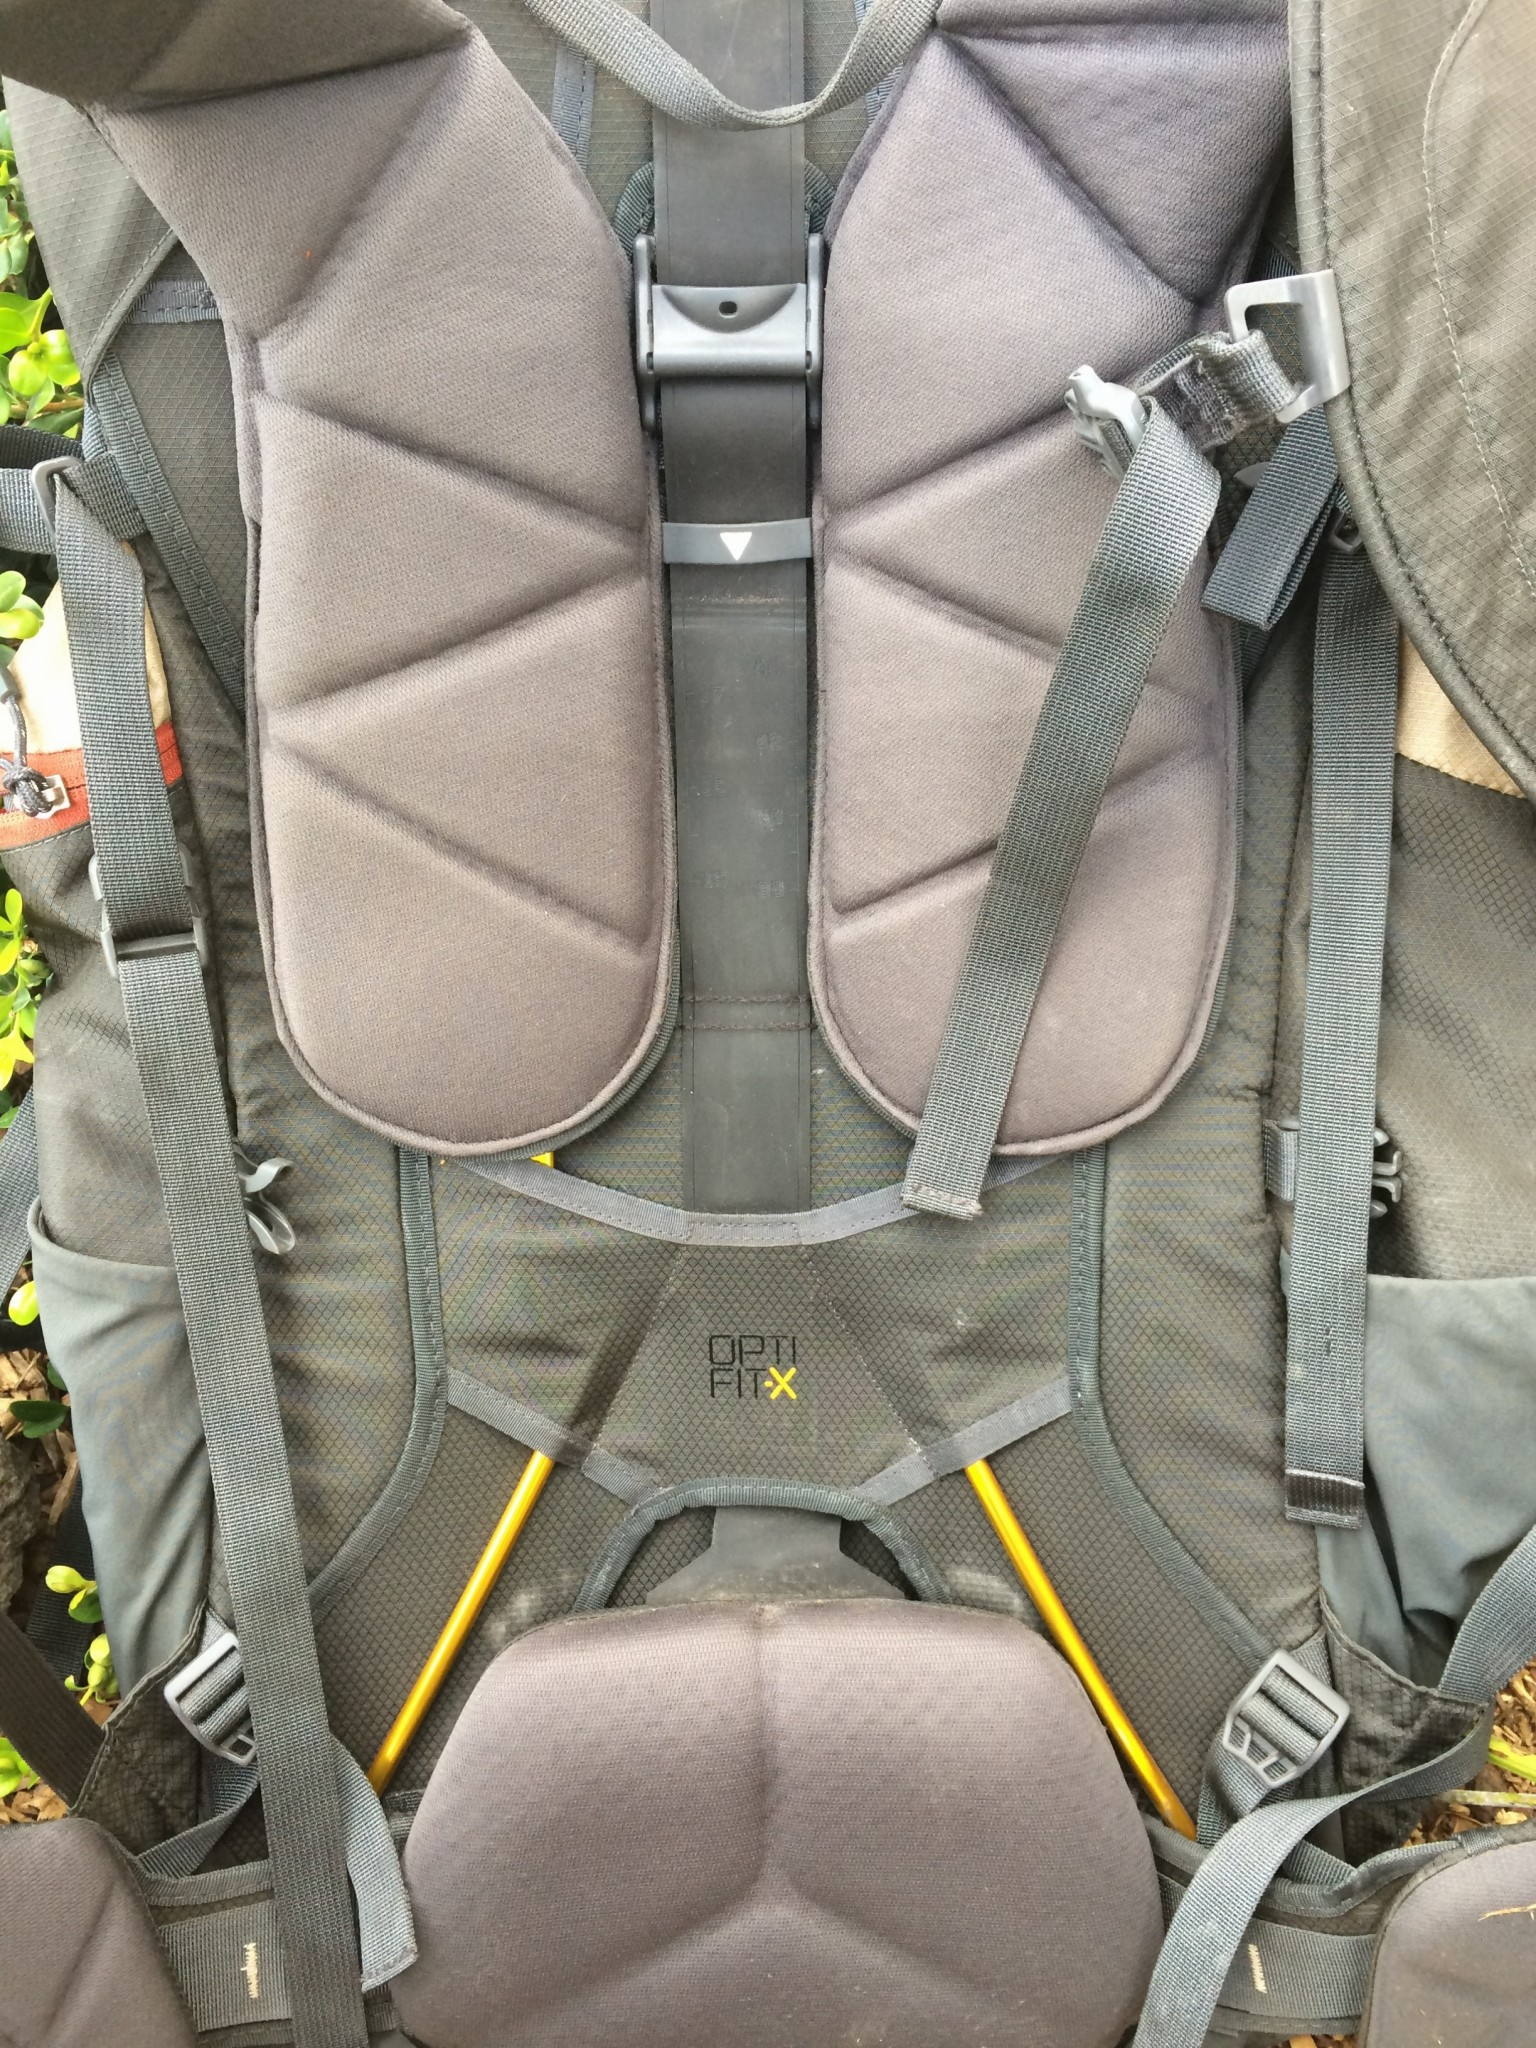 fcac0c54eee The North Face Conness 82 Backpack Review - FeedTheHabit.com